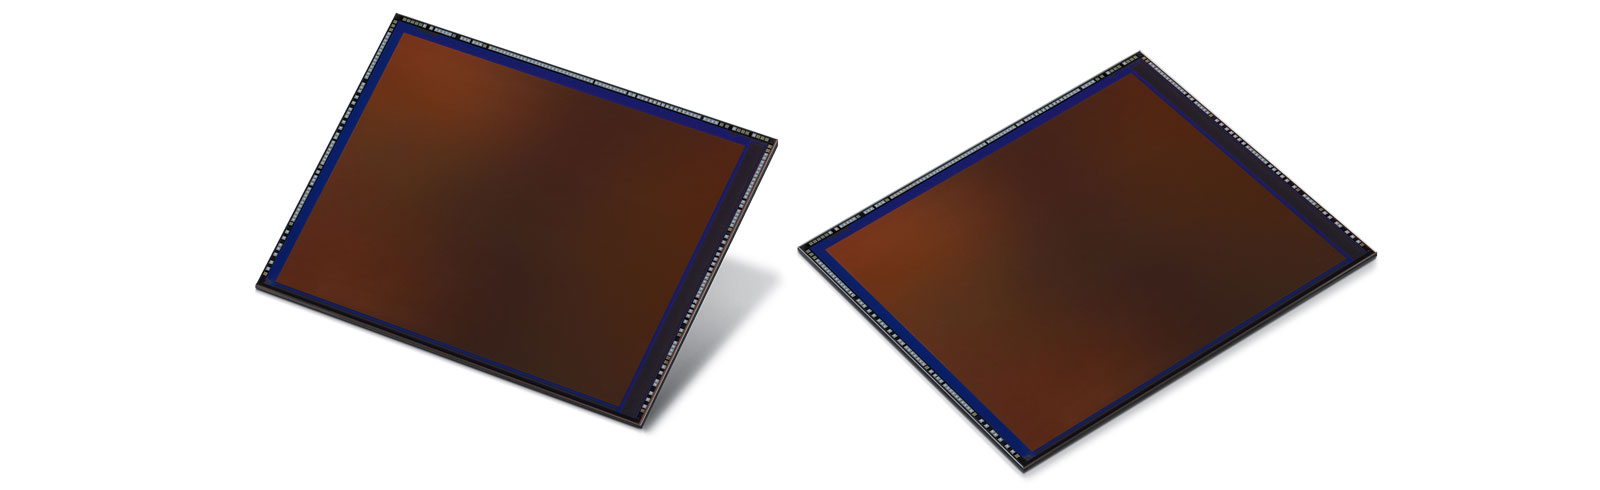 Samsung's 108MP image sensor for Xiaomi's smartphones is official